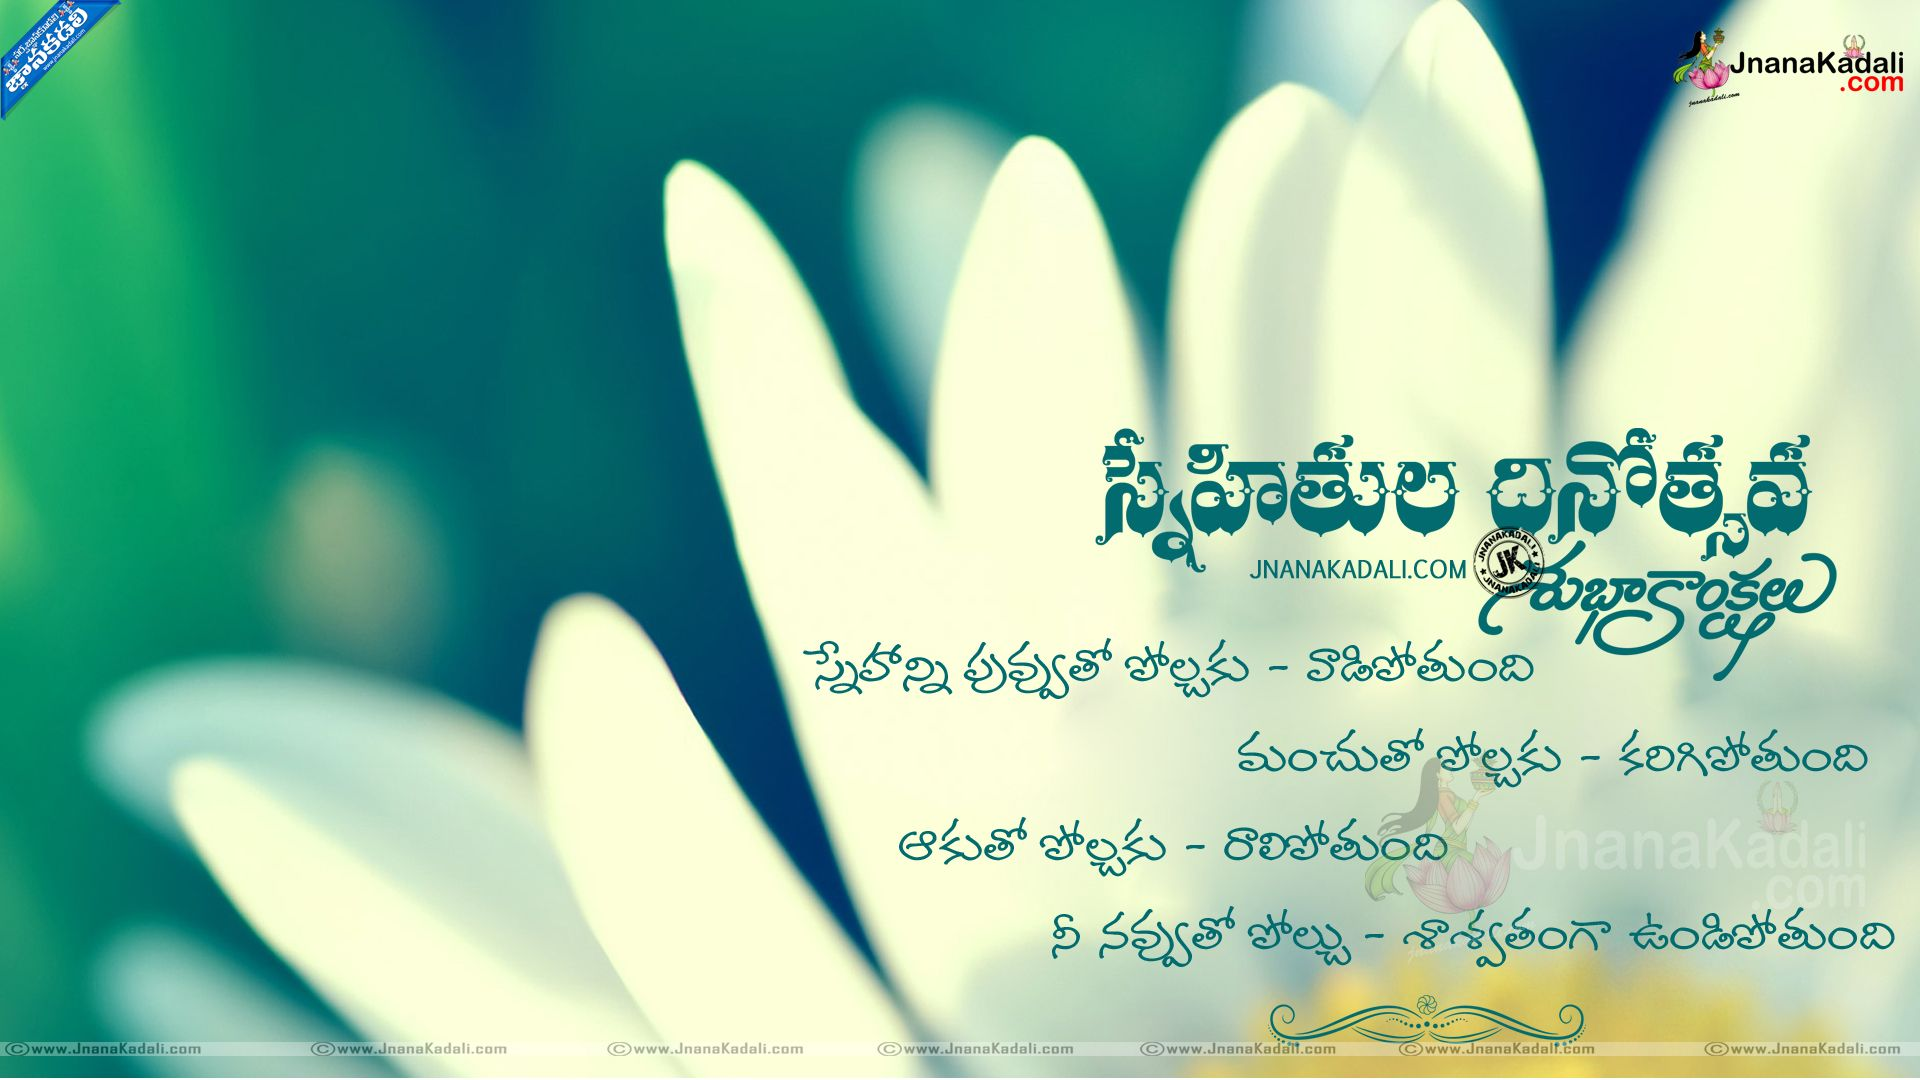 Friendship day telugu quotes wishes greetings images wallpapers friendship day telugu quotes wishes greetings images wallpapers pictures friendship day pictures in telugu friendship kristyandbryce Image collections